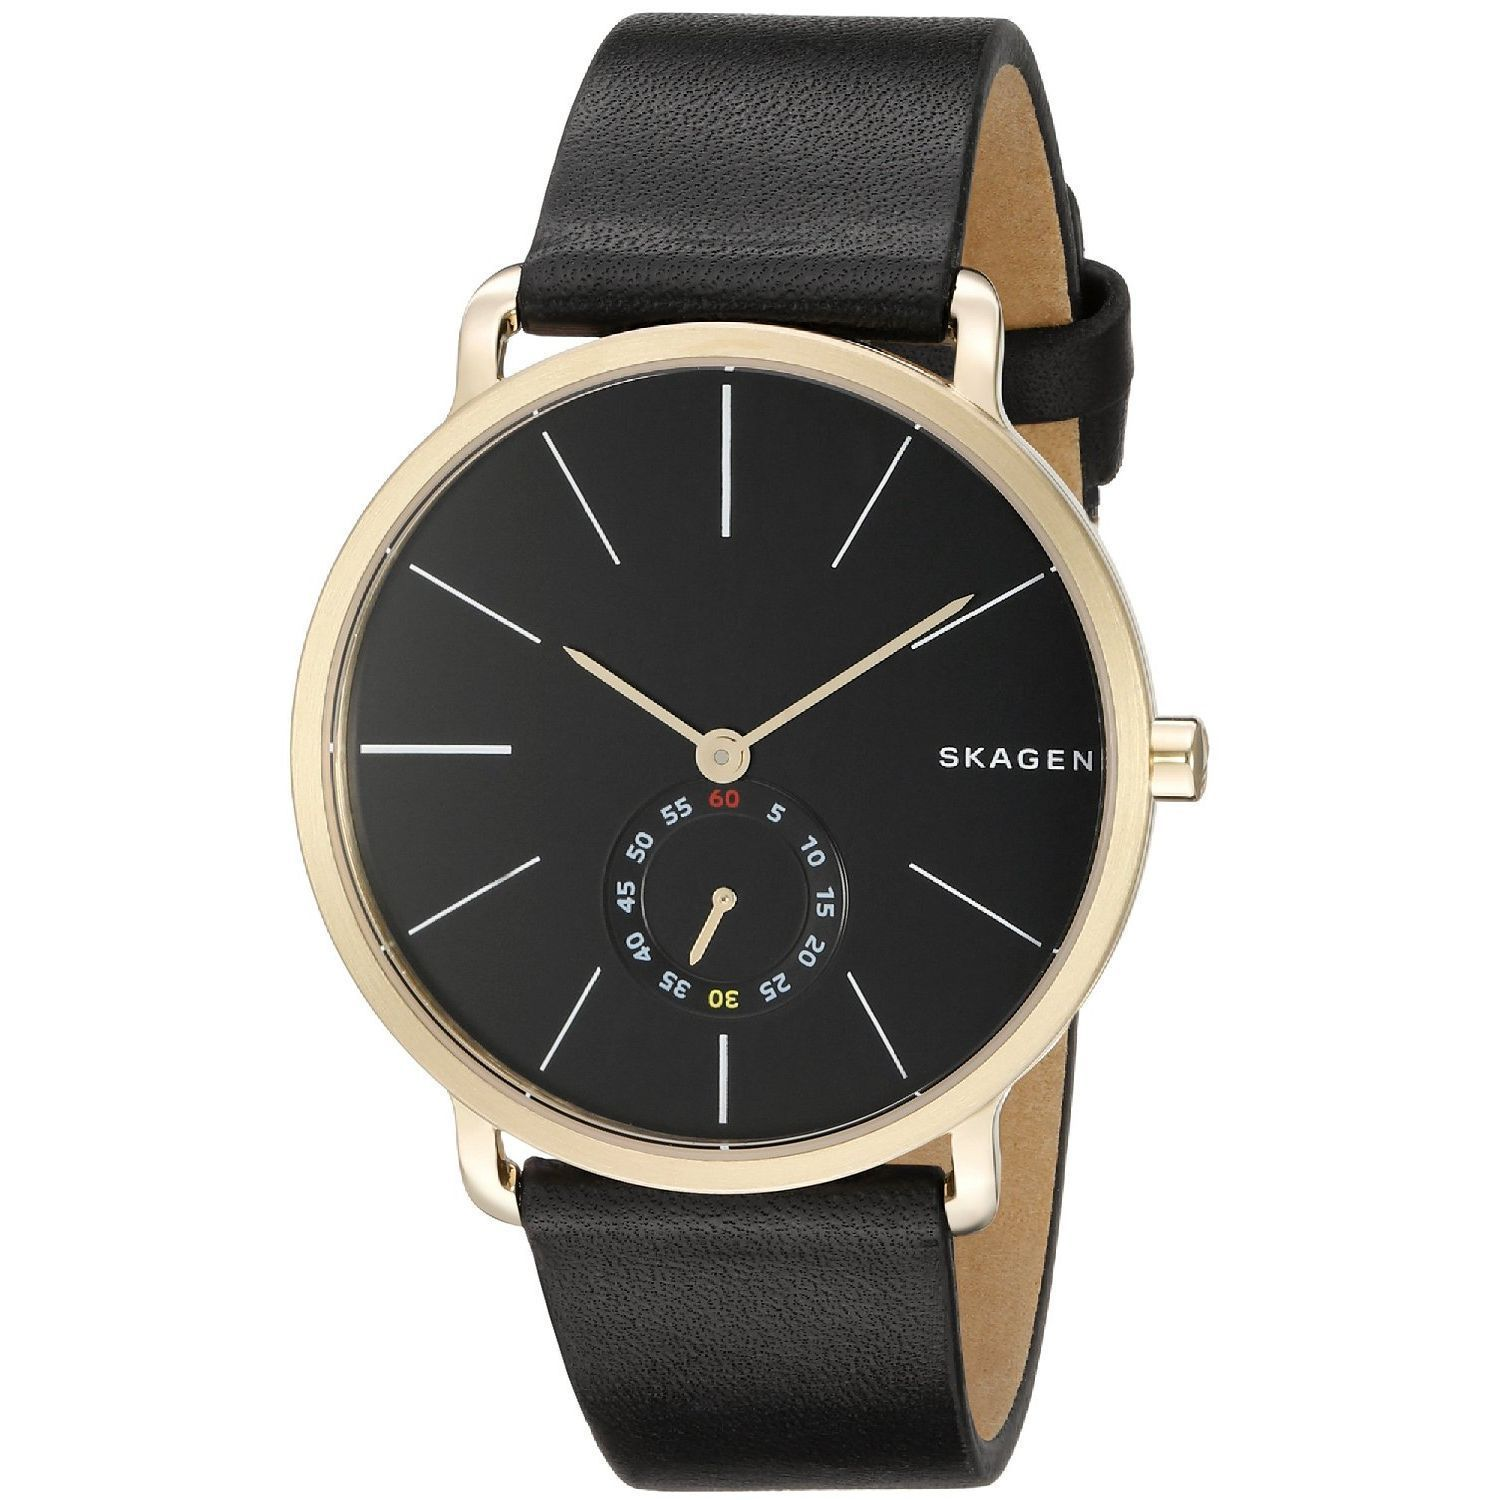 hands sponsored like misfit taboola fossil skagen hagen smartwatches its ed on by one of hybrid watches ll links hopes you